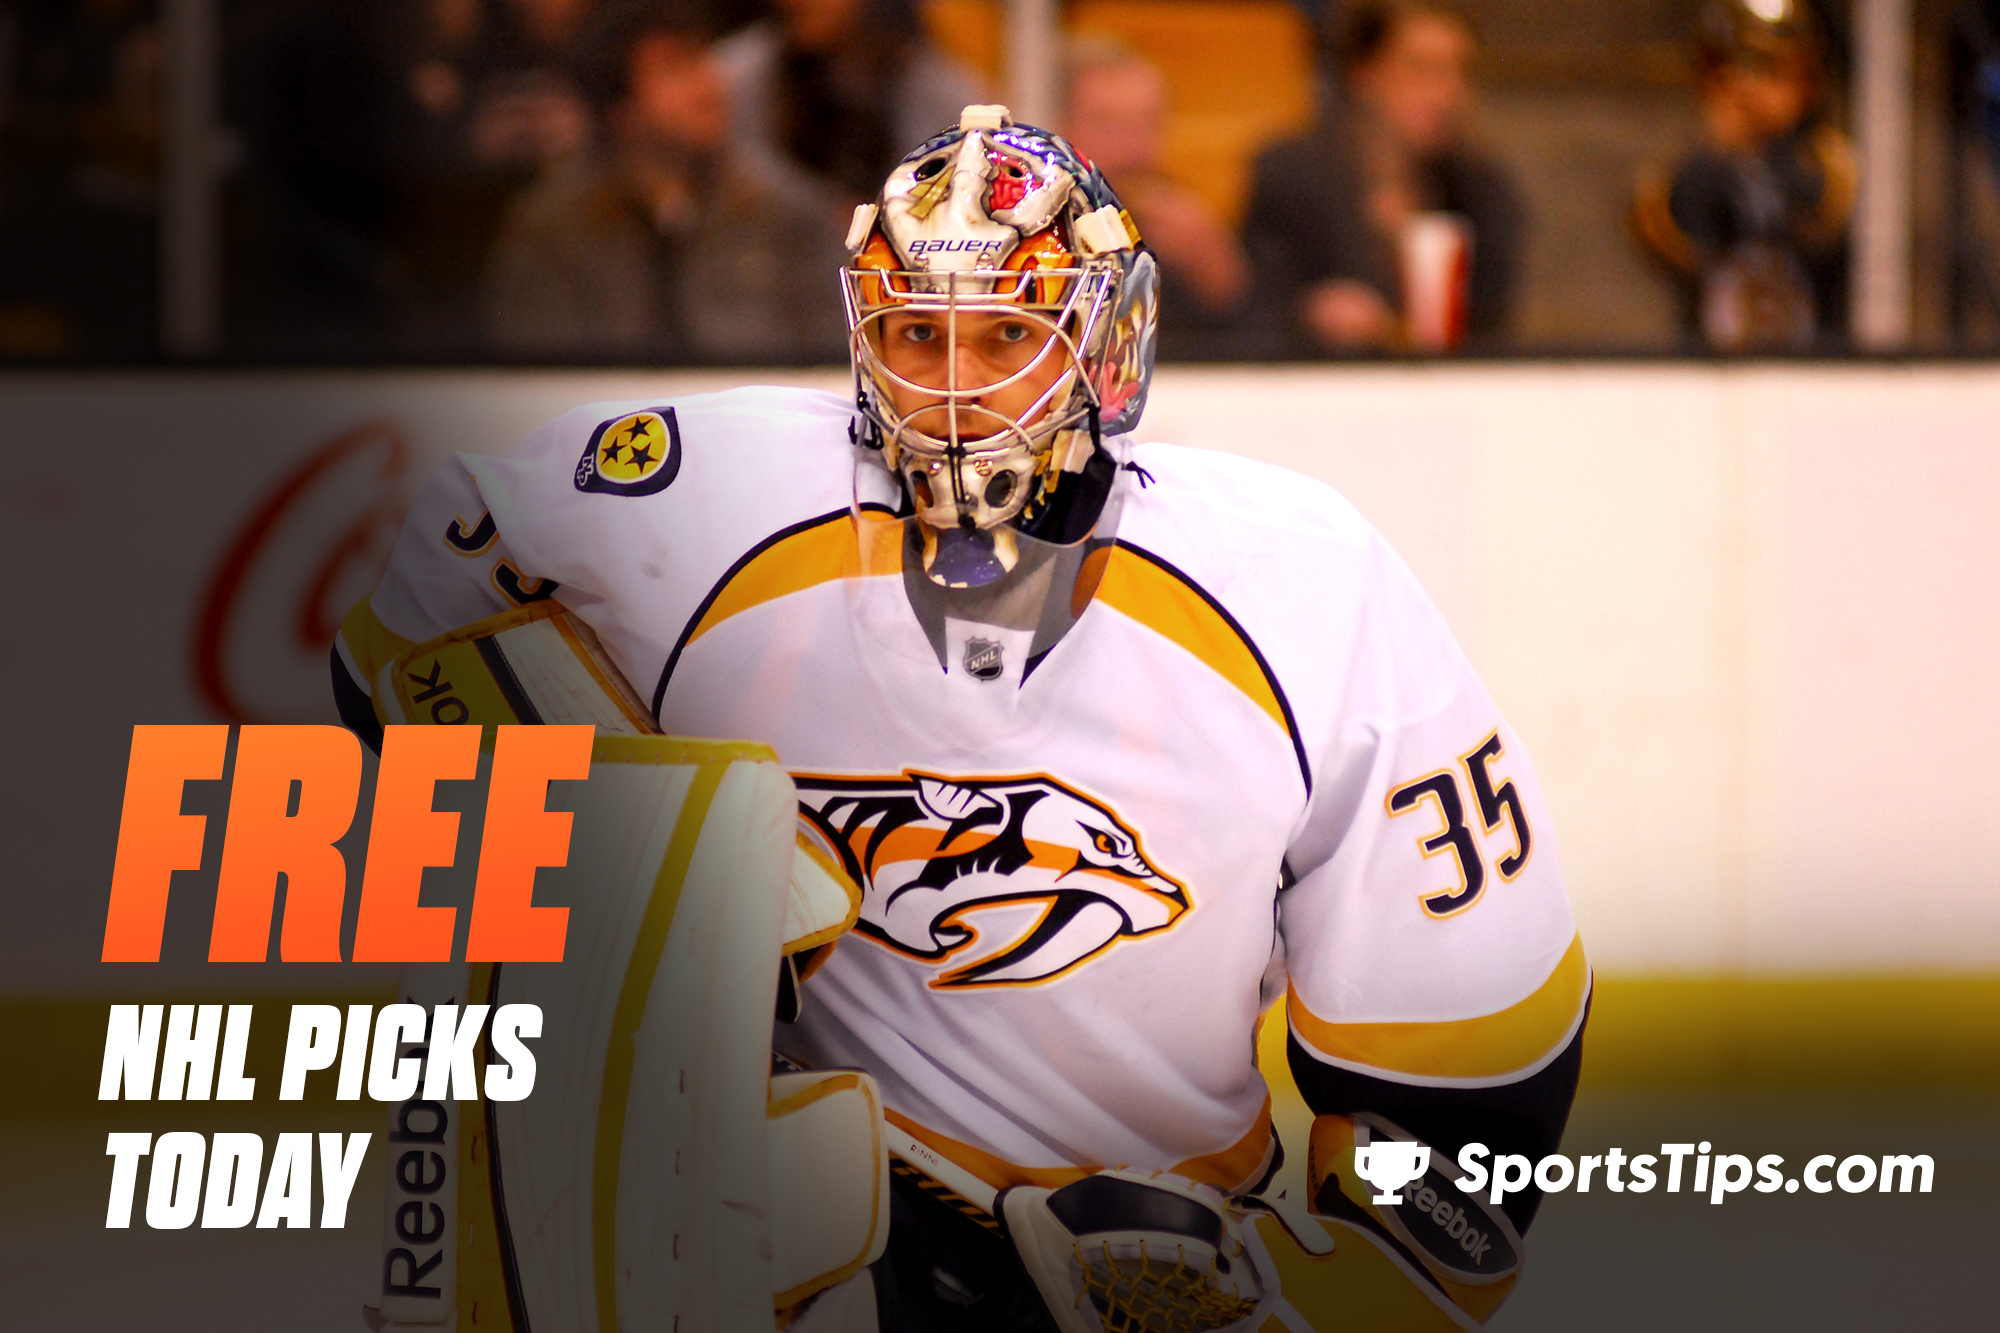 Free NHL Picks Today for Thursday, January 14th, 2021